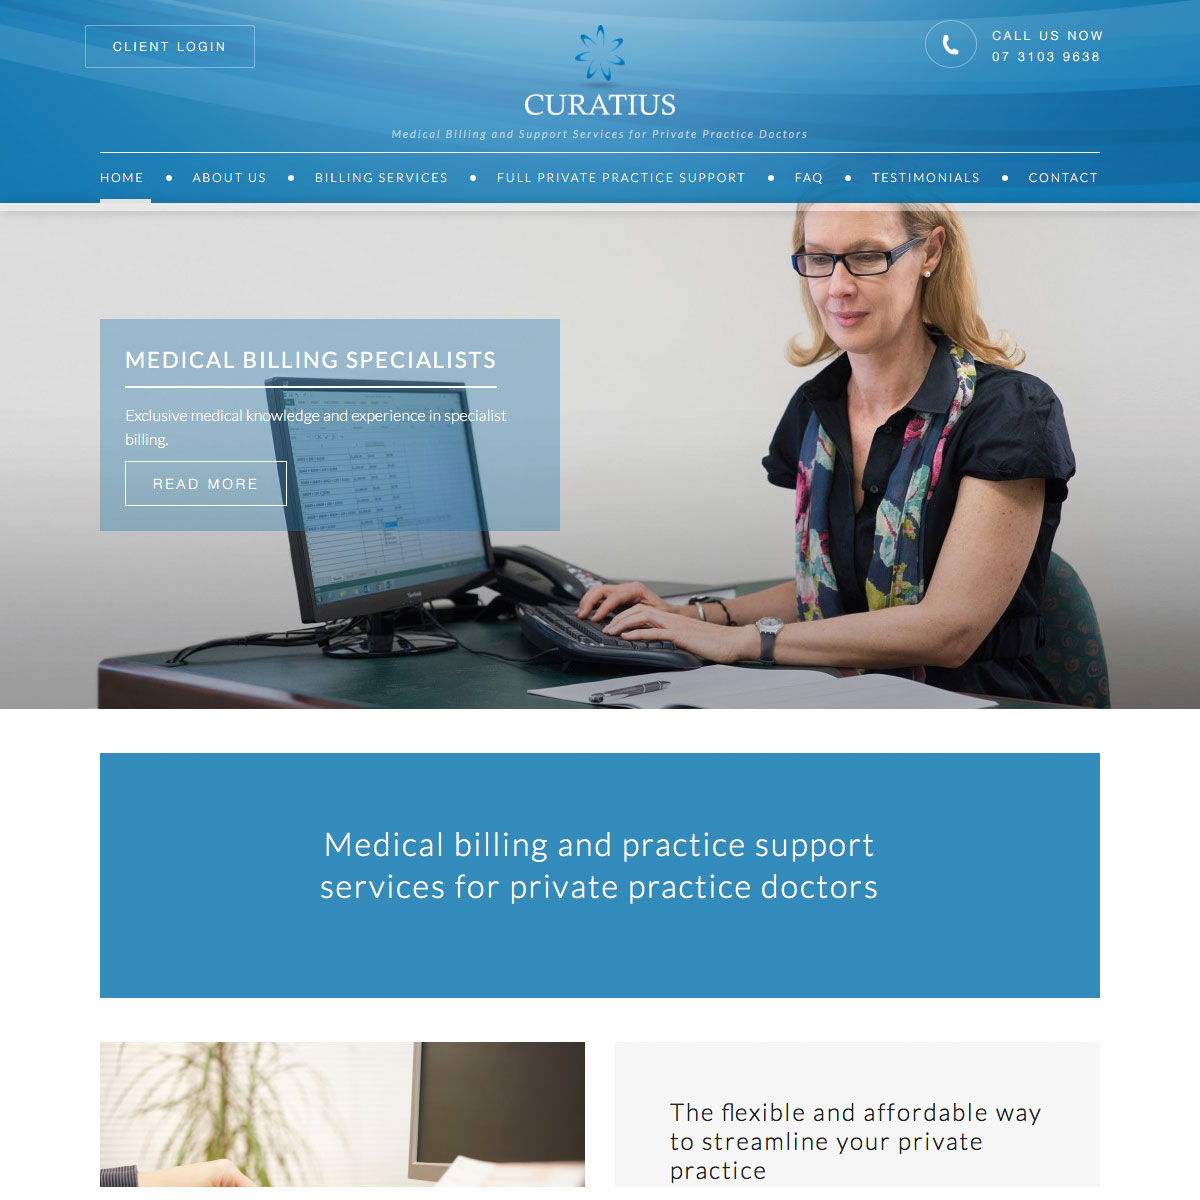 Curatius Home Page